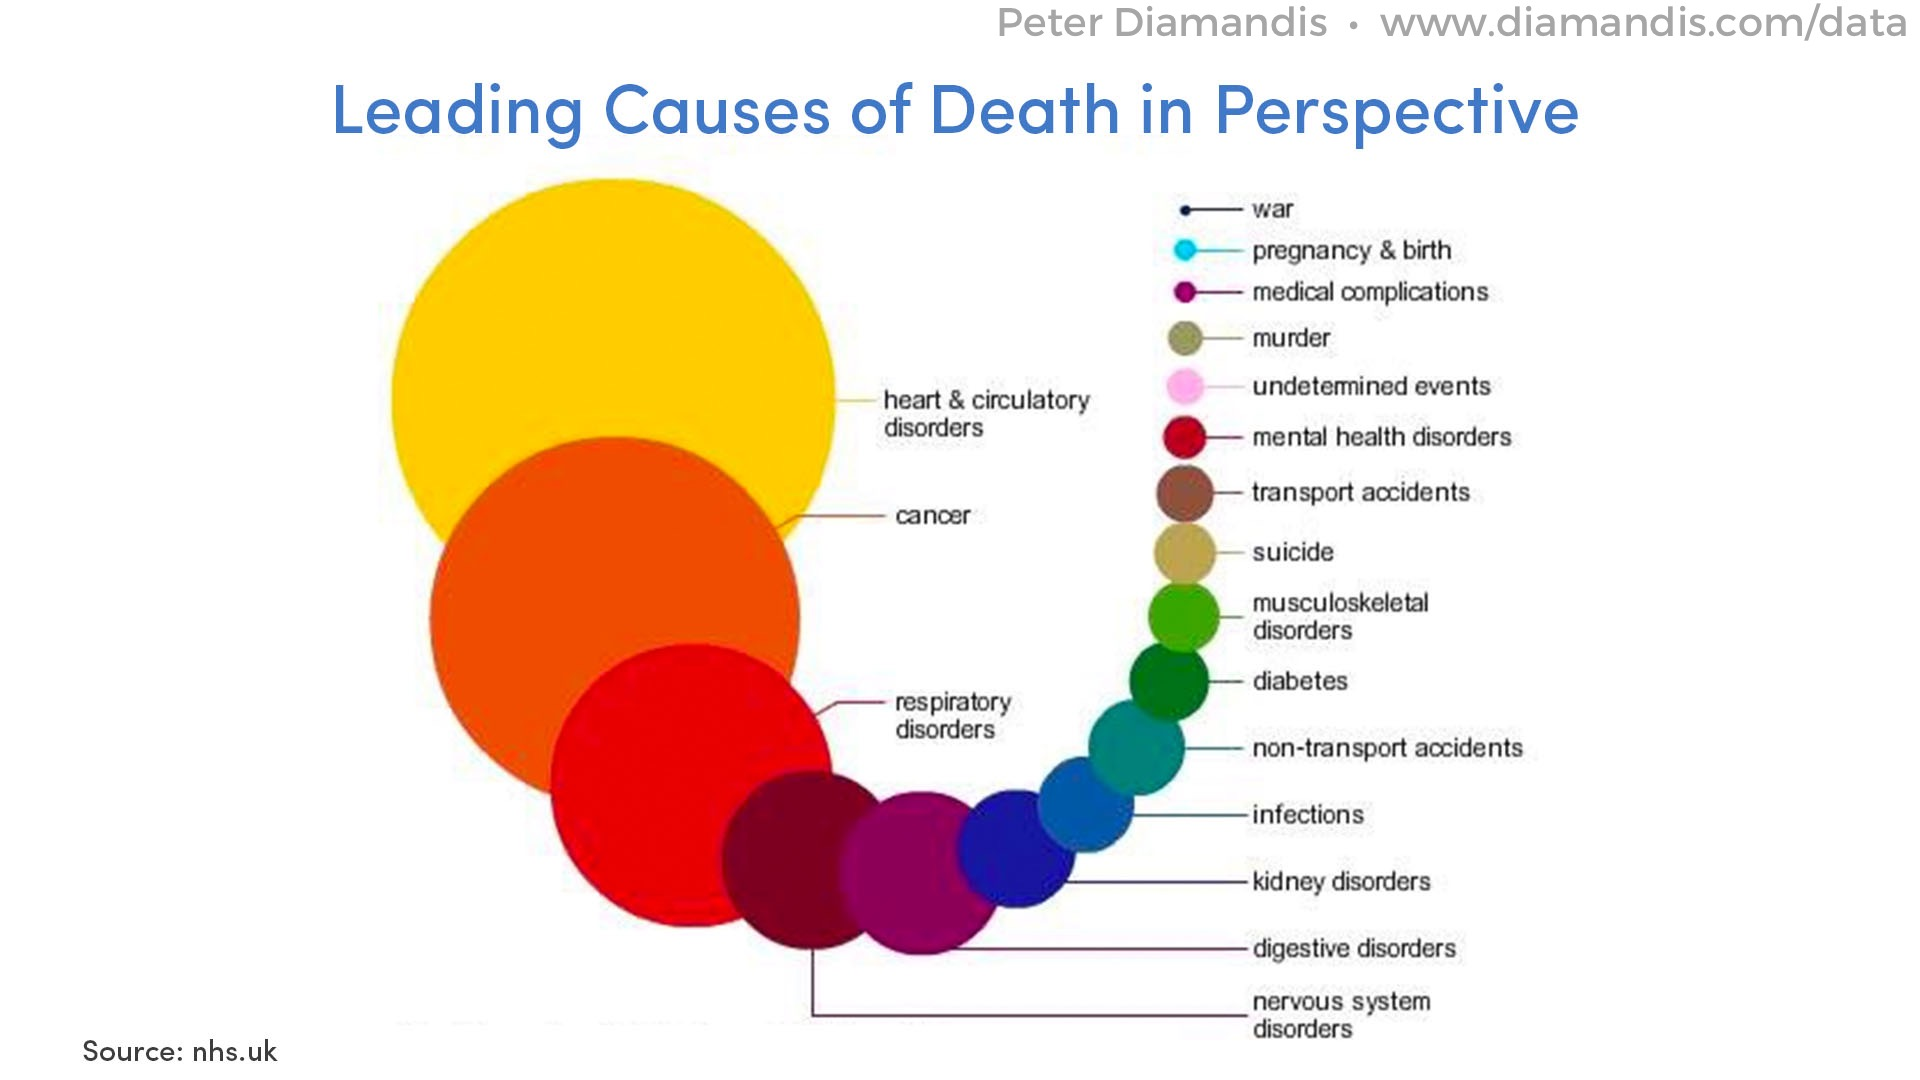 Leading%20Causes%20of%20Death%20in%20Perspective%202